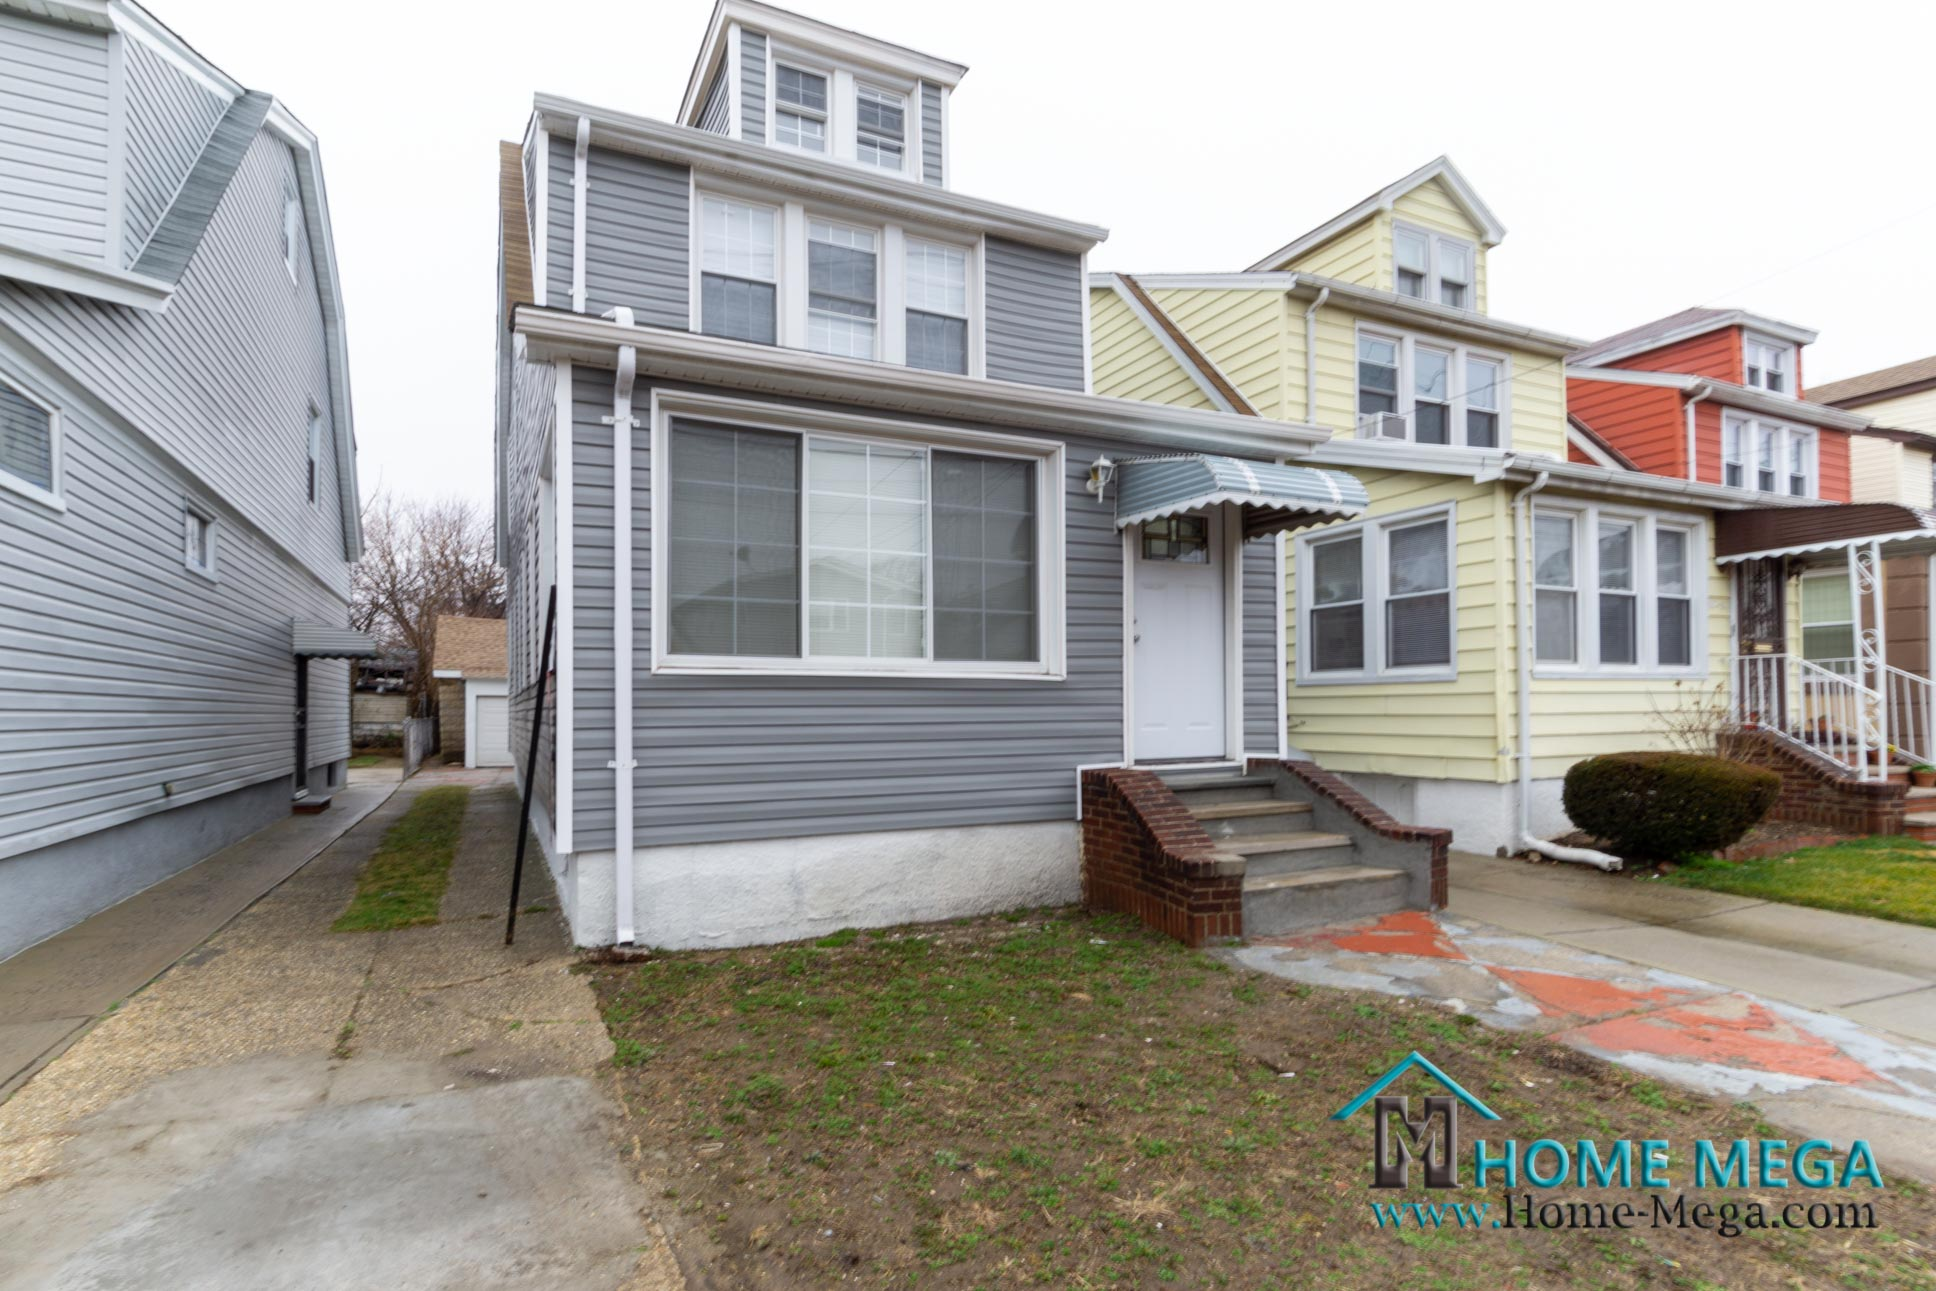 One Family Home For Sale in Saint Albans, Queens NY 11412. Most Beautifully Remodeled HUGE One Family!